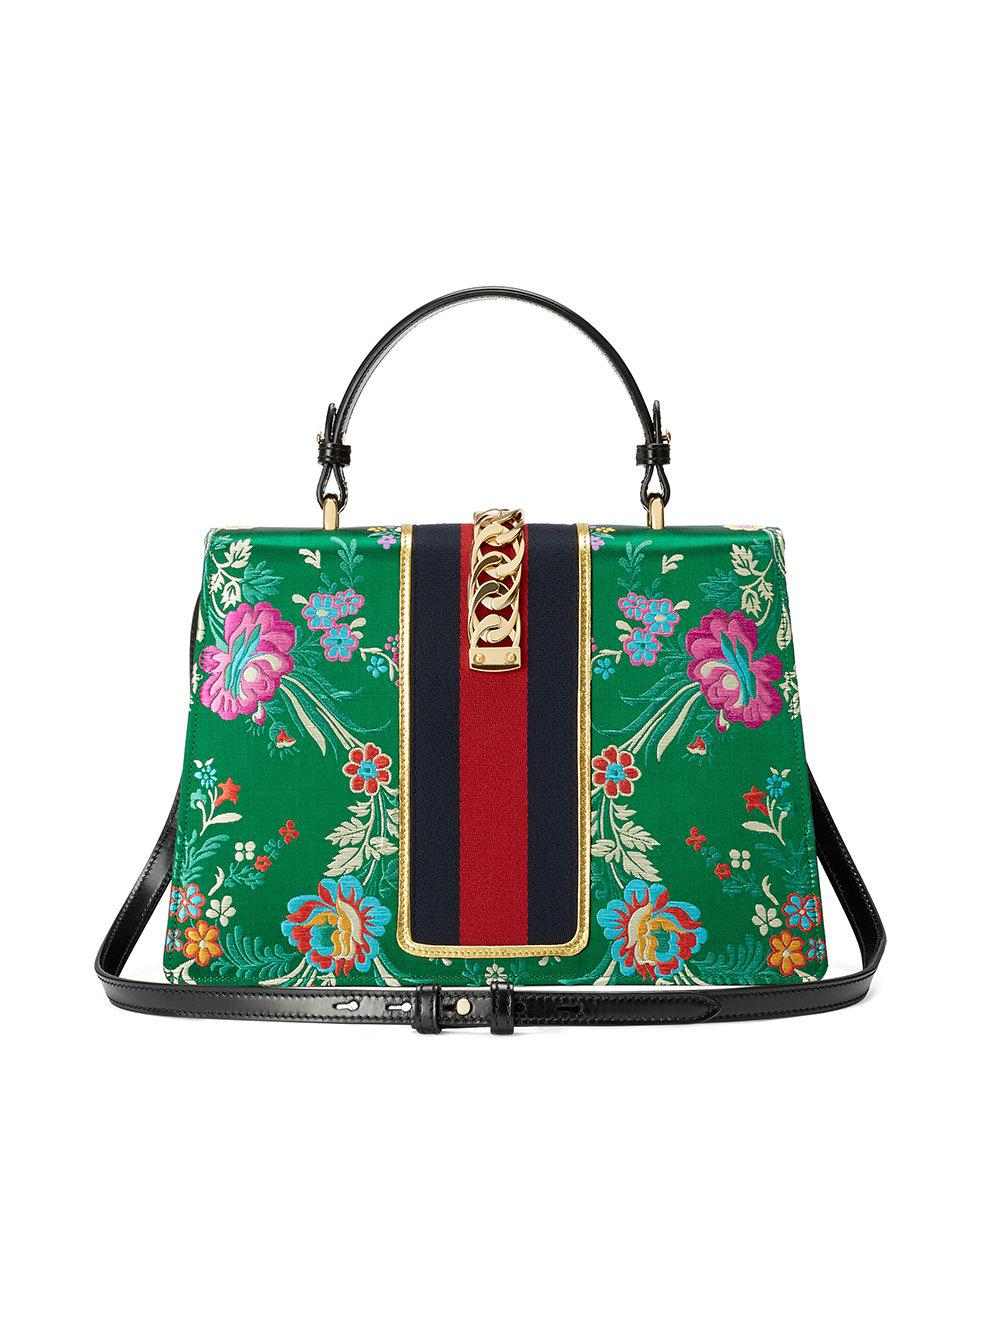 eb99b617563 Gucci Sylvie Floral Jacquard Top Handle Bag in Green - Save  12.805755395683448% - Lyst